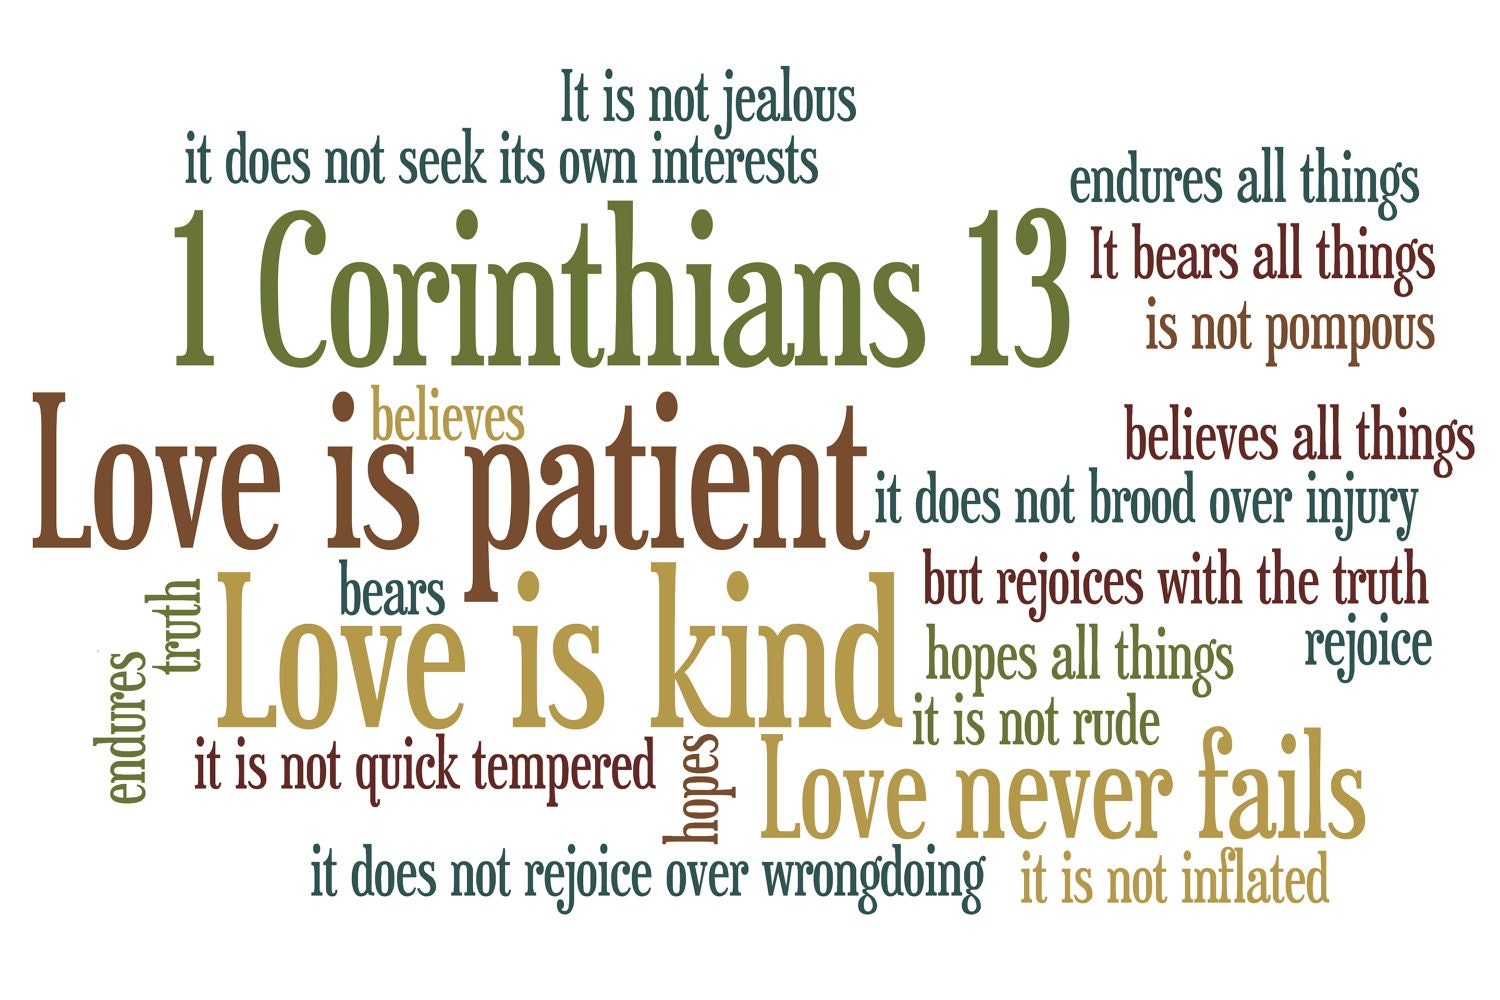 Quotes About Love In The Bible : Love Quotes Pictures Images Free 2013: Bible Love Quotes